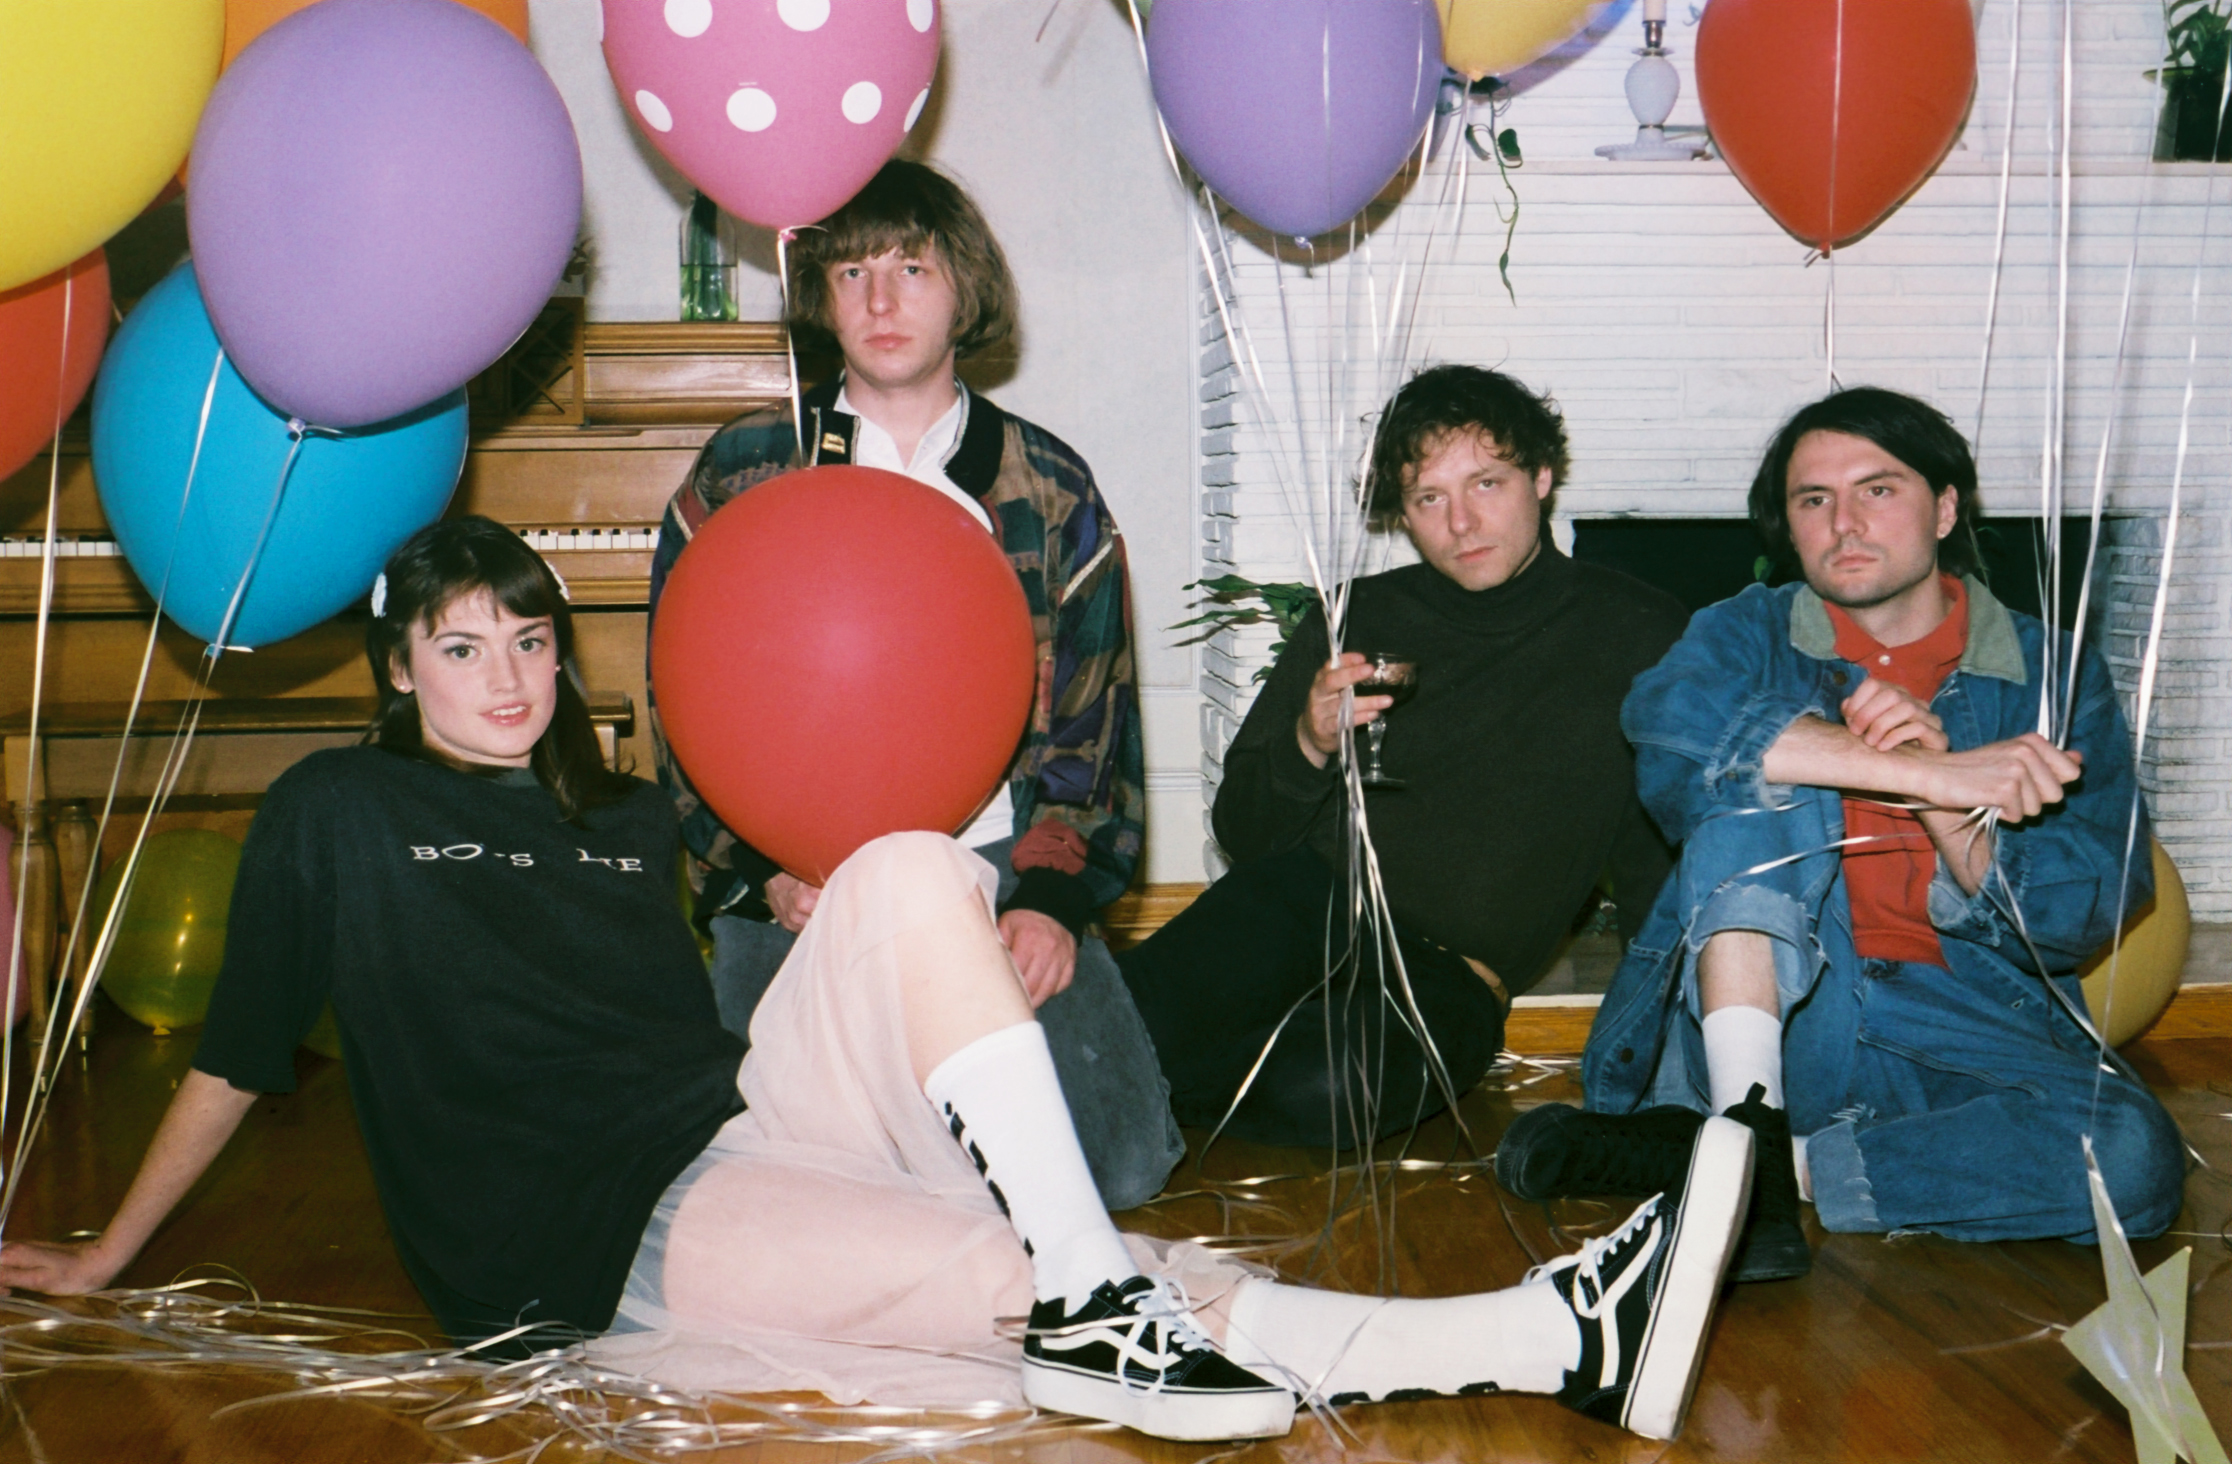 Our interview with Tops: Jane Penny of TOPS talks self-producing and why Los Angeles helped them evolve as a band.